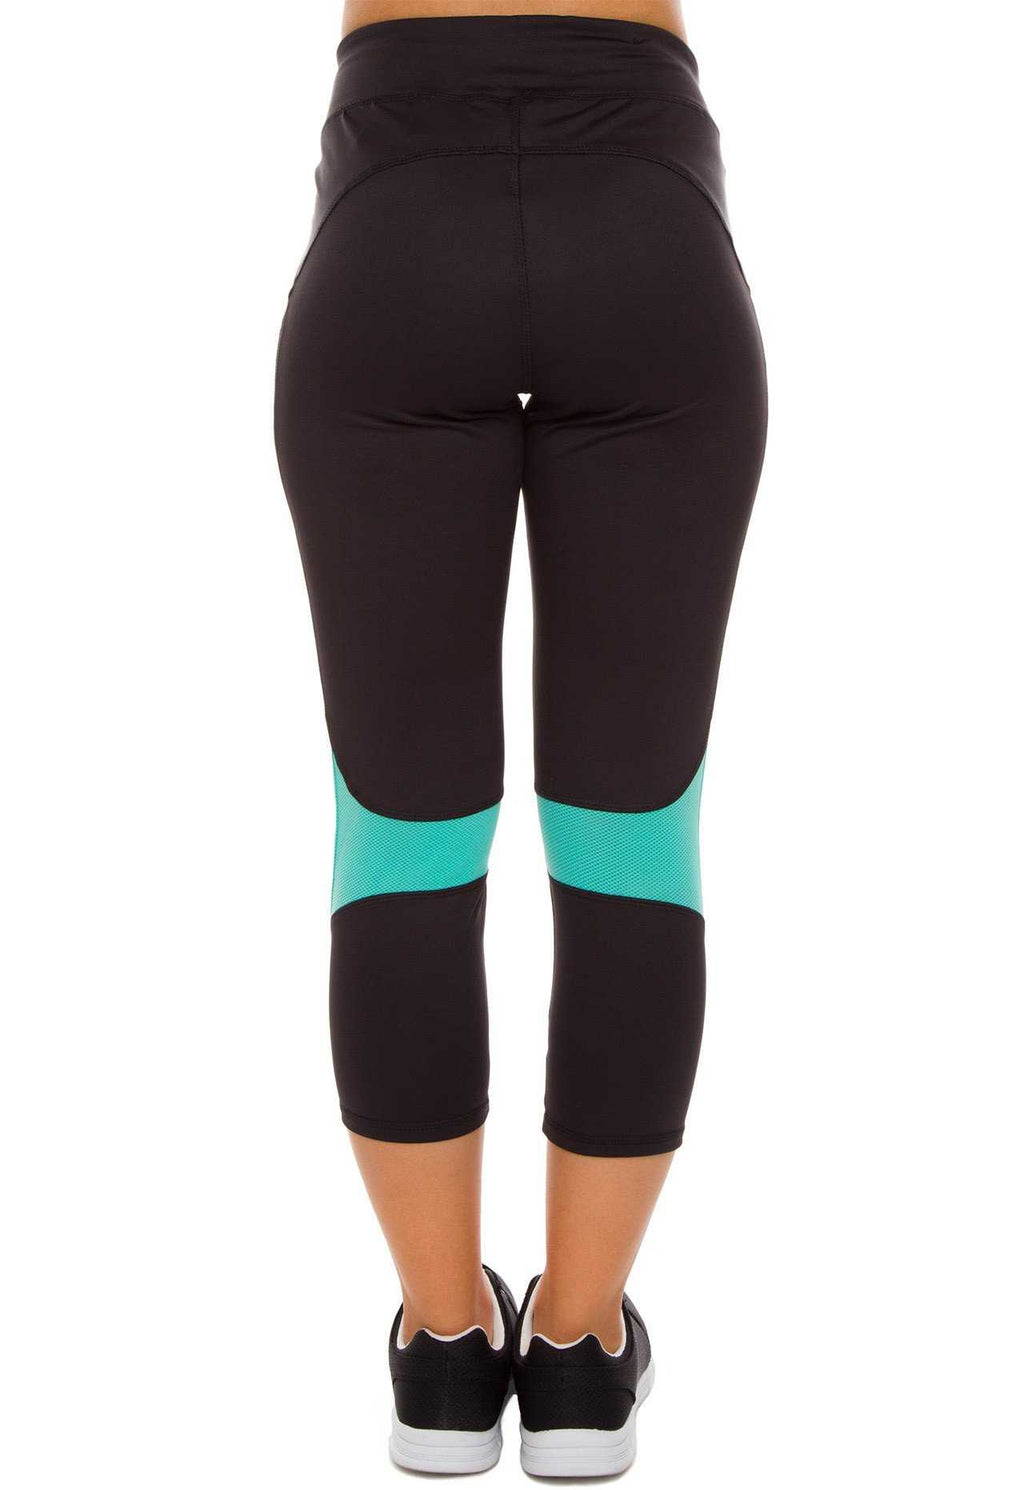 Pants - Running Past Activewear Pants - Teal